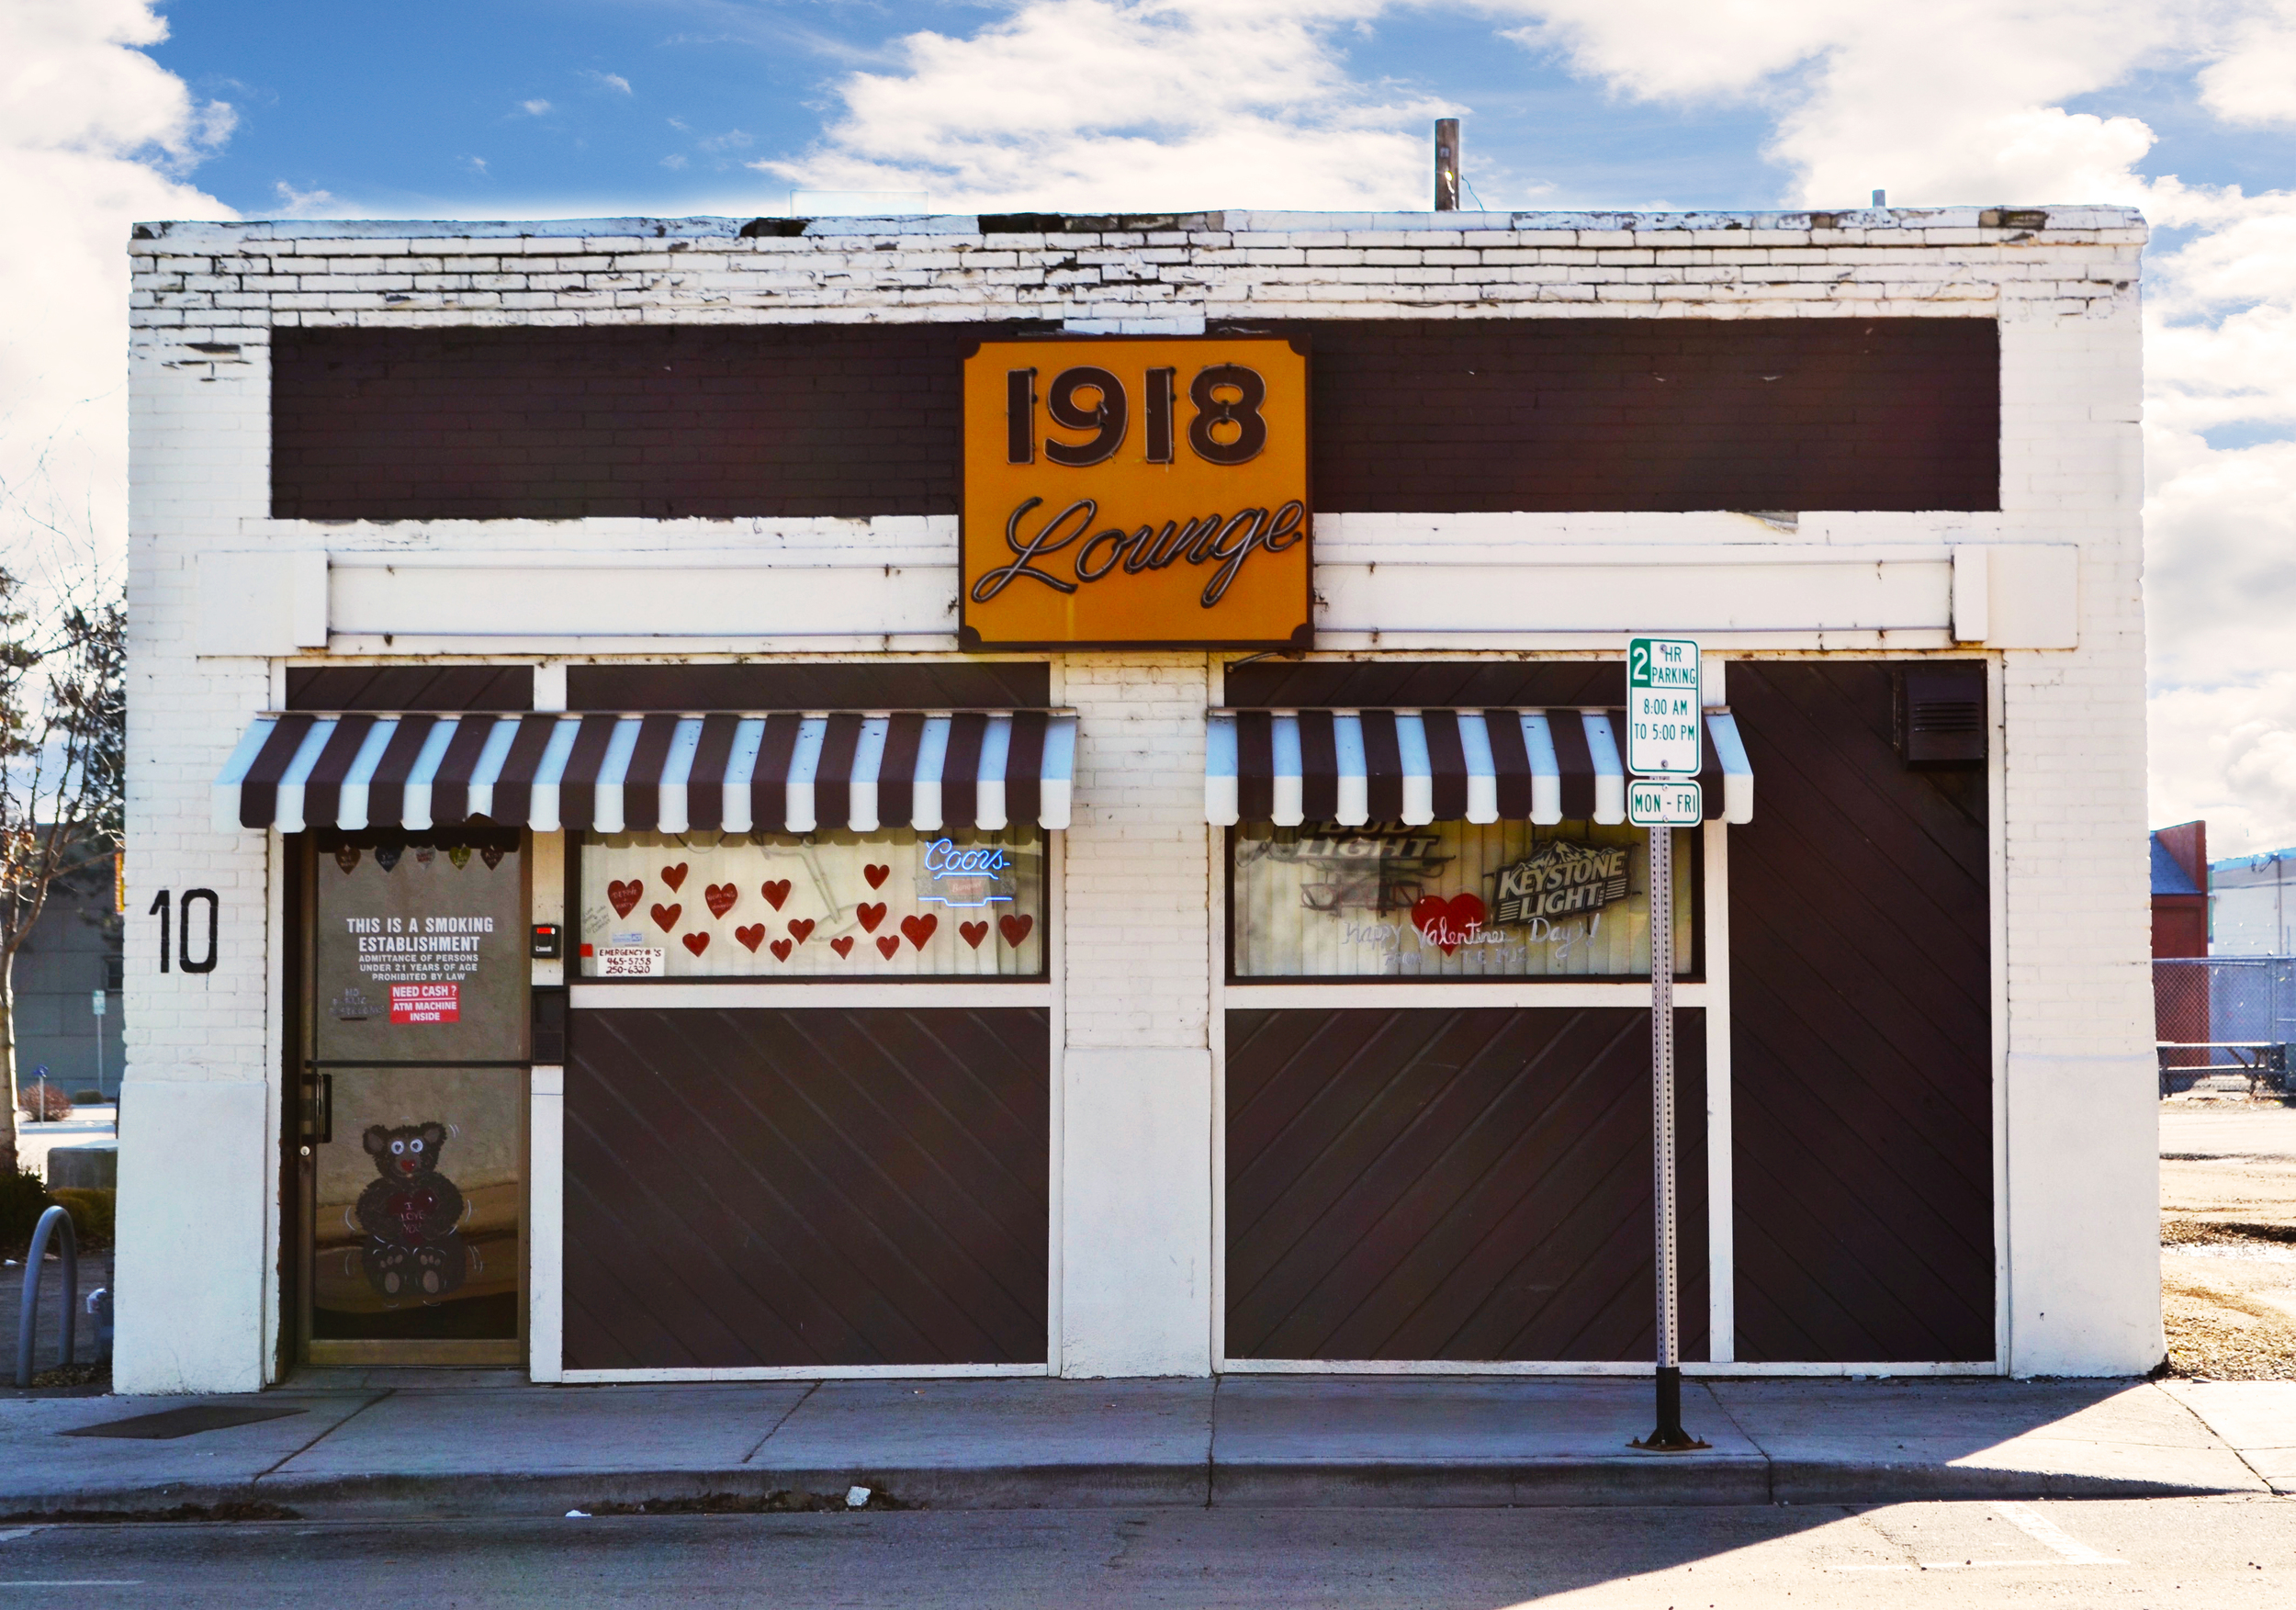 1918 Lounge | Nampa. Idaho | All Rights Reserved: Heather Woolery 2016